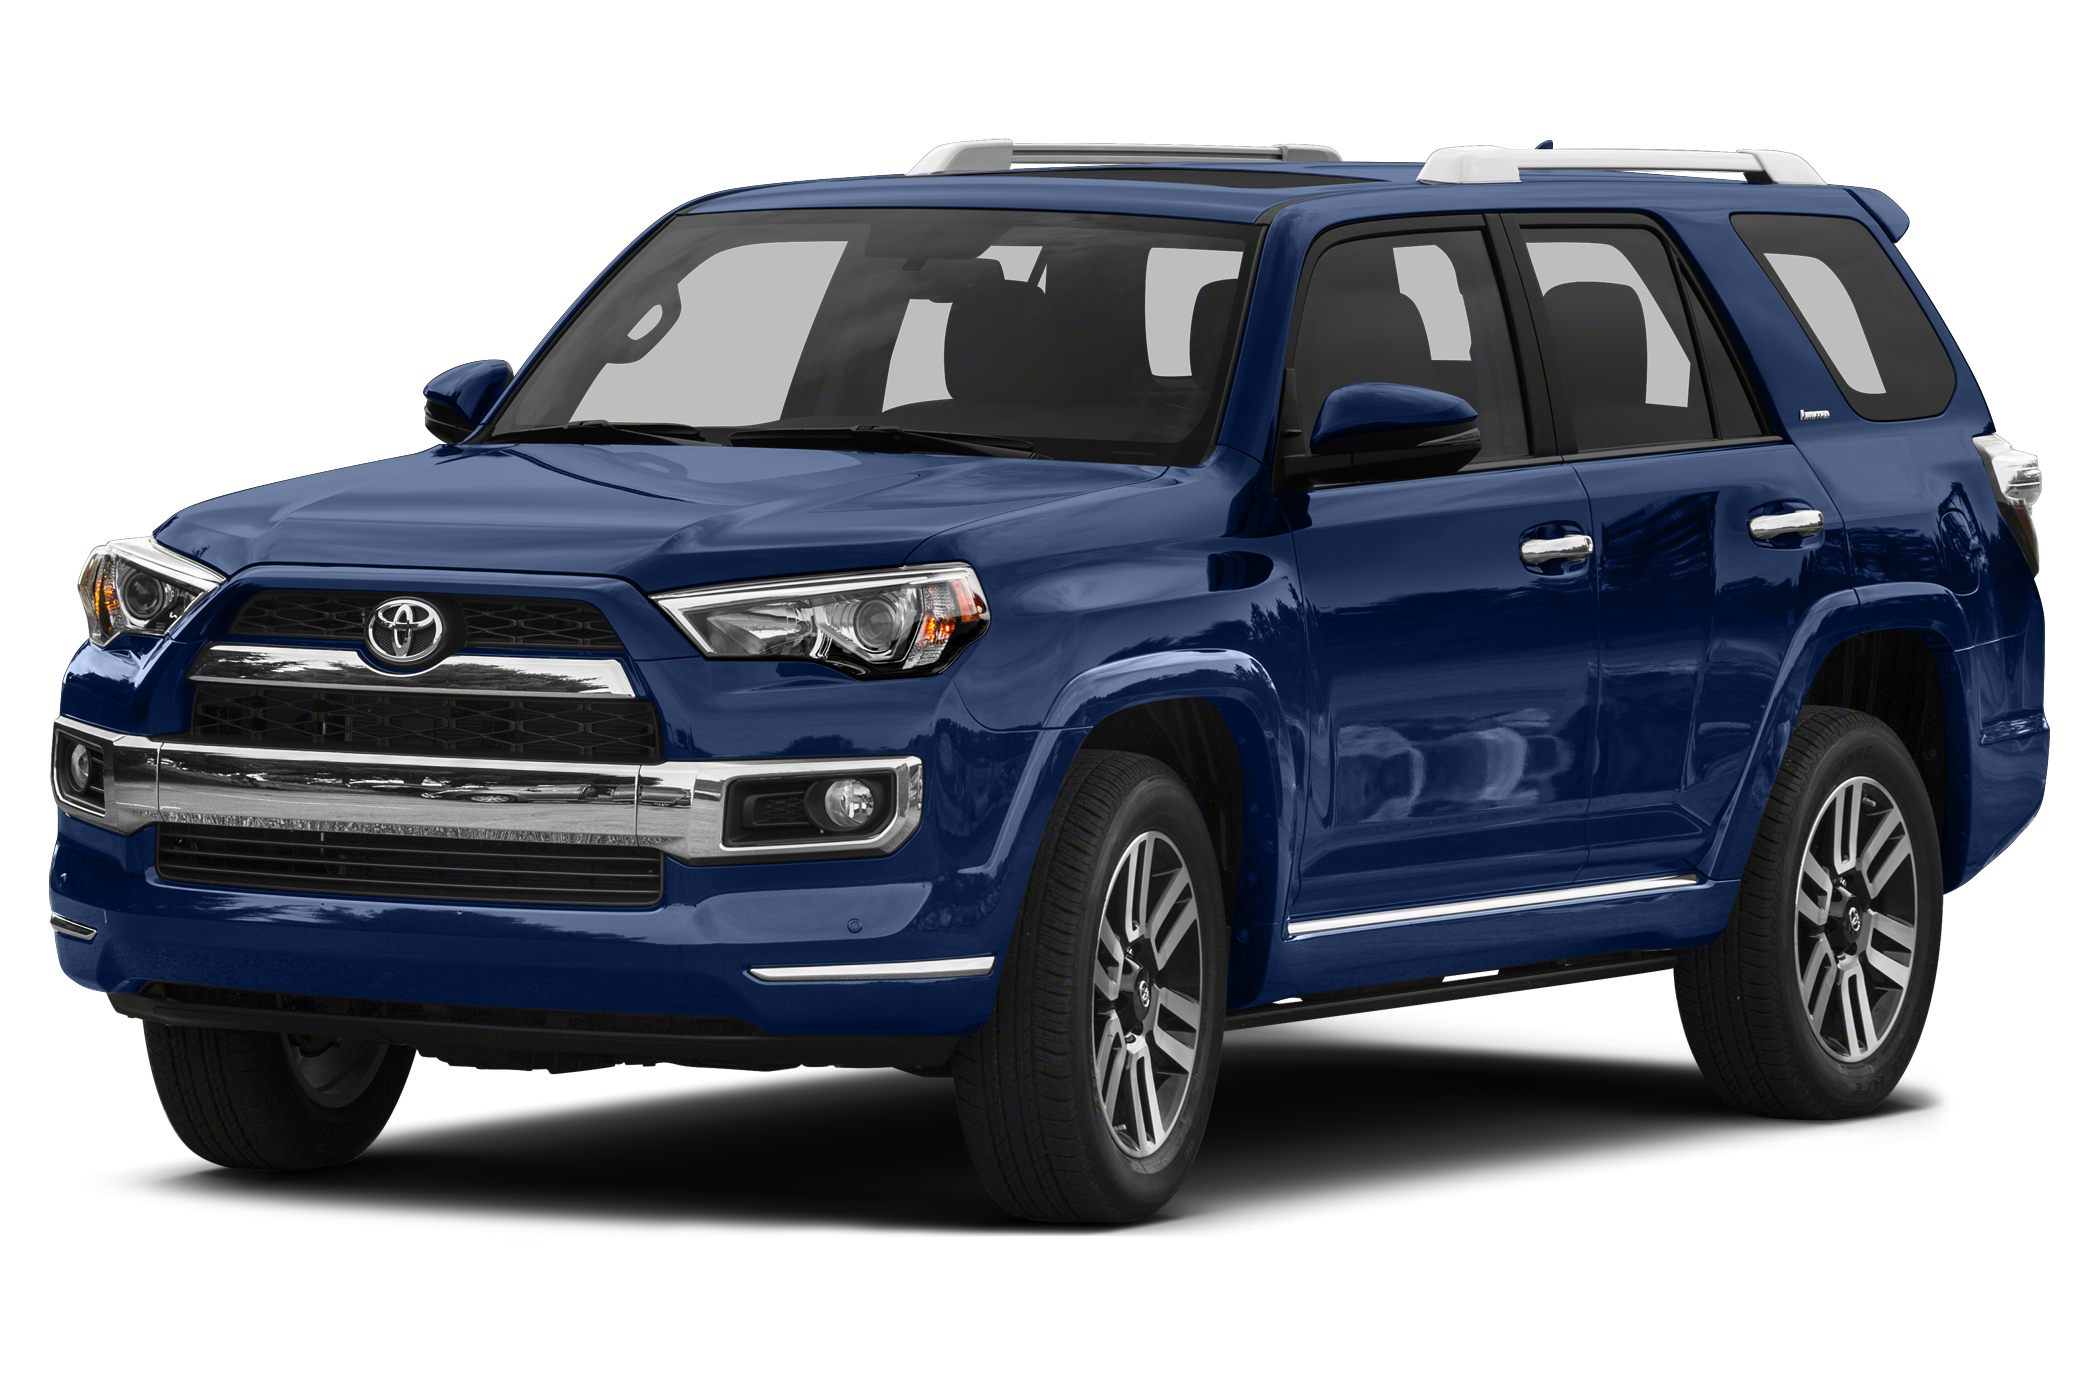 2015 Toyota 4Runner Limited SUV for sale in Pine Bluff for $42,500 with 0 miles